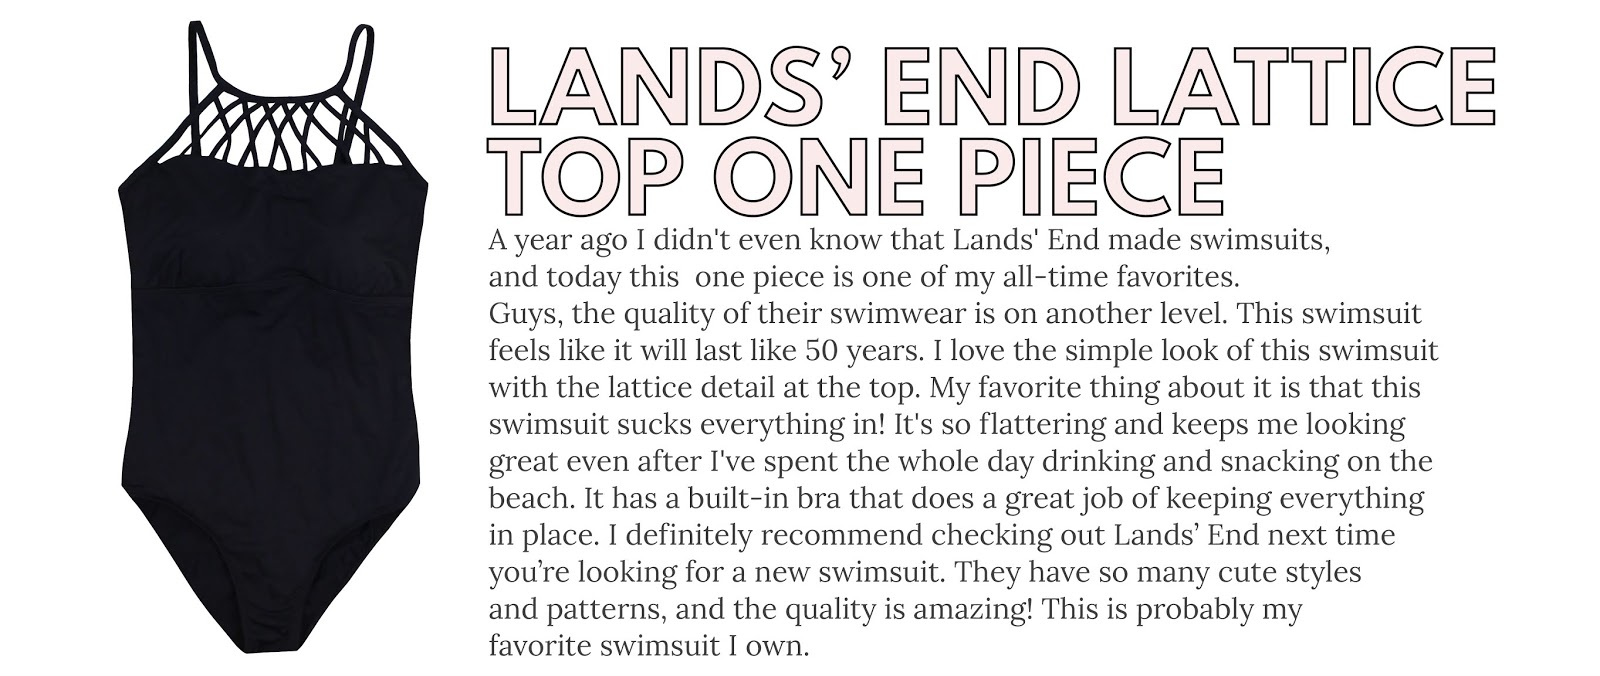 Lands' End Swimwear Review, Lands' End Lattice Top One Piece Swimsuit